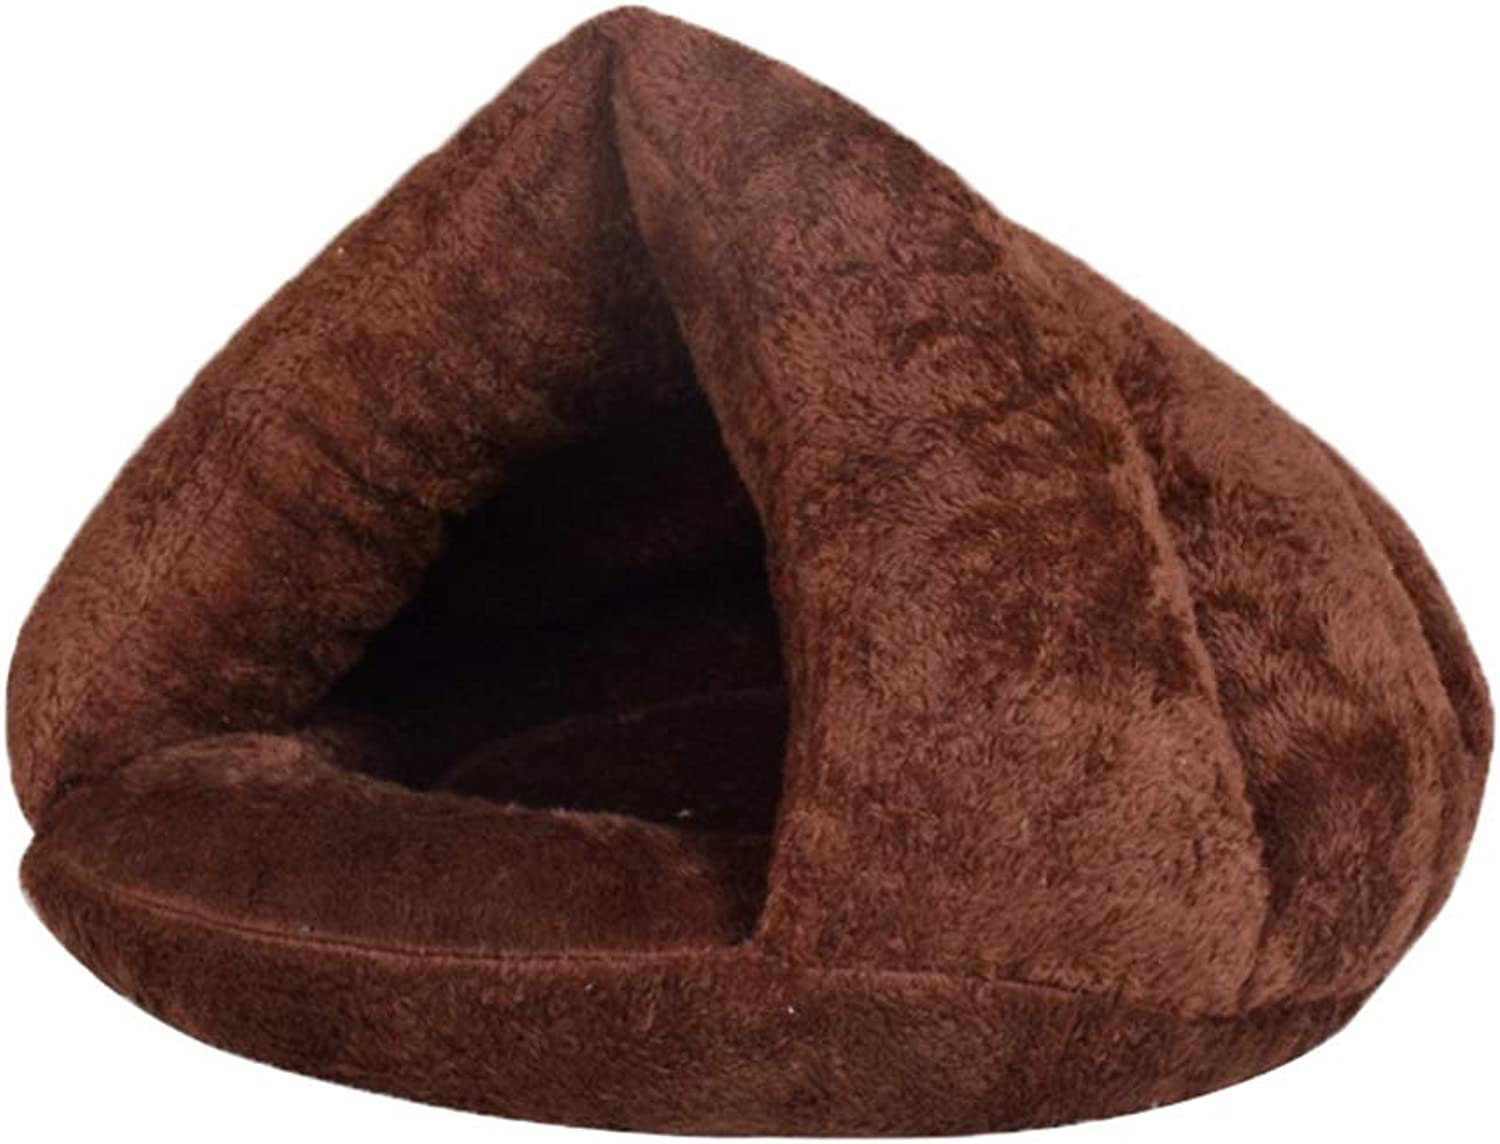 Kennel Cat Litter Triangle Winter Comfortable Warm Plush Cotton Pad Thickening Sleeping Bag Yurt Washing (color   Brown, Size   S)